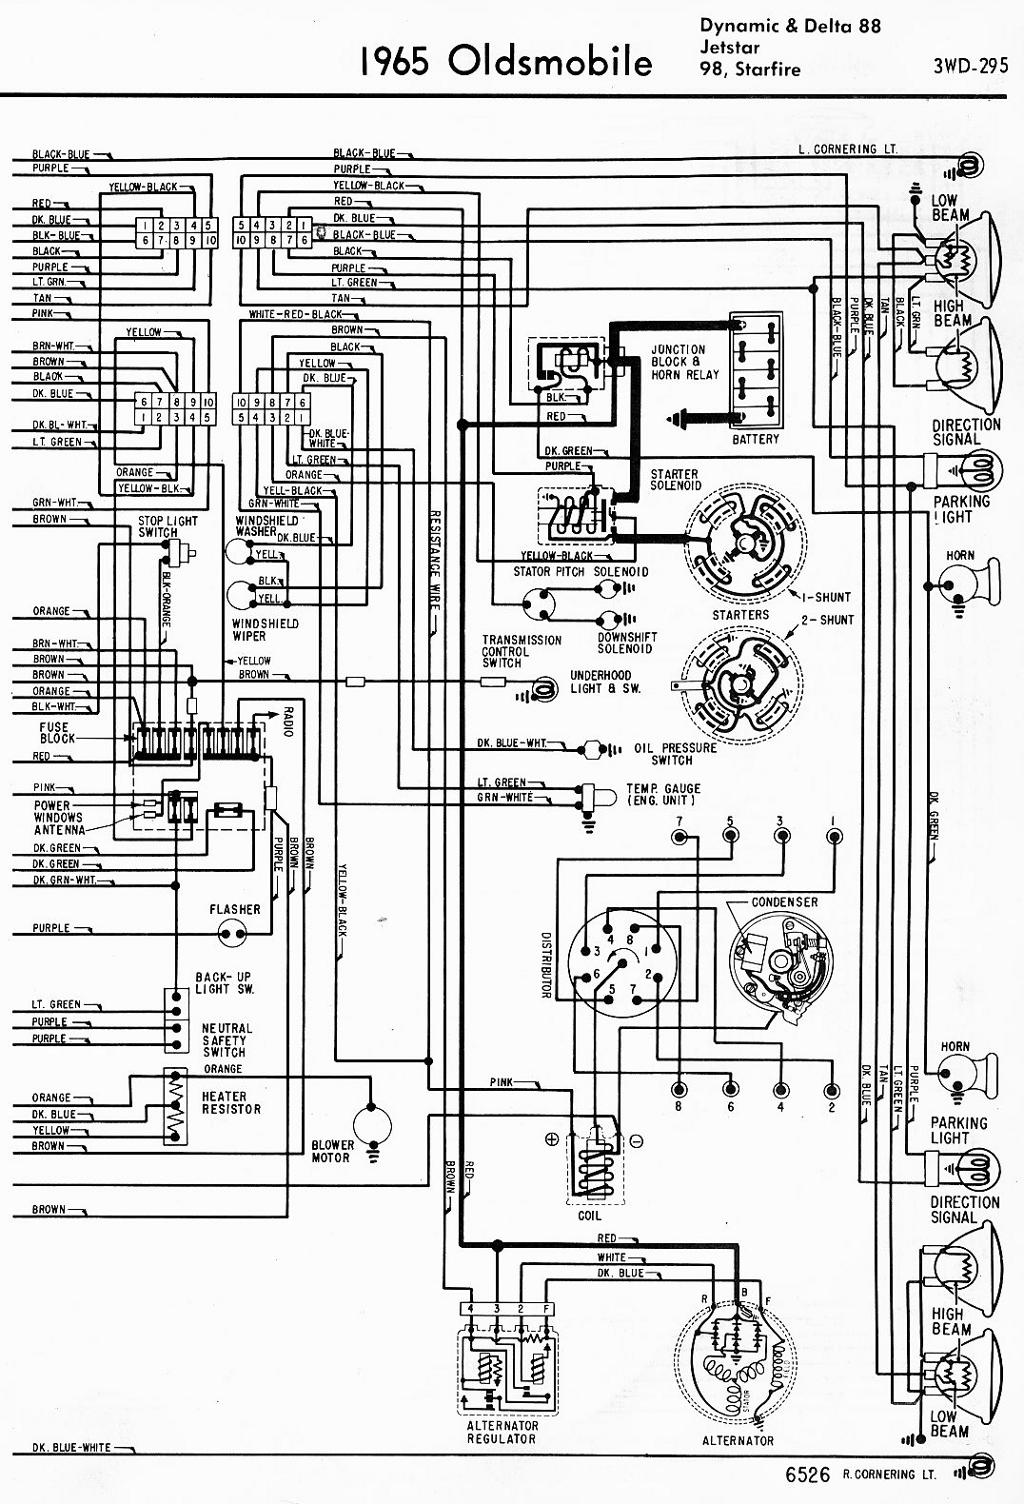 1965 olds 442 wiring diagram technical diagrams 1955 ford thunderbird wiring diagram 1968 f85, 442 & cutlass wiring diagram